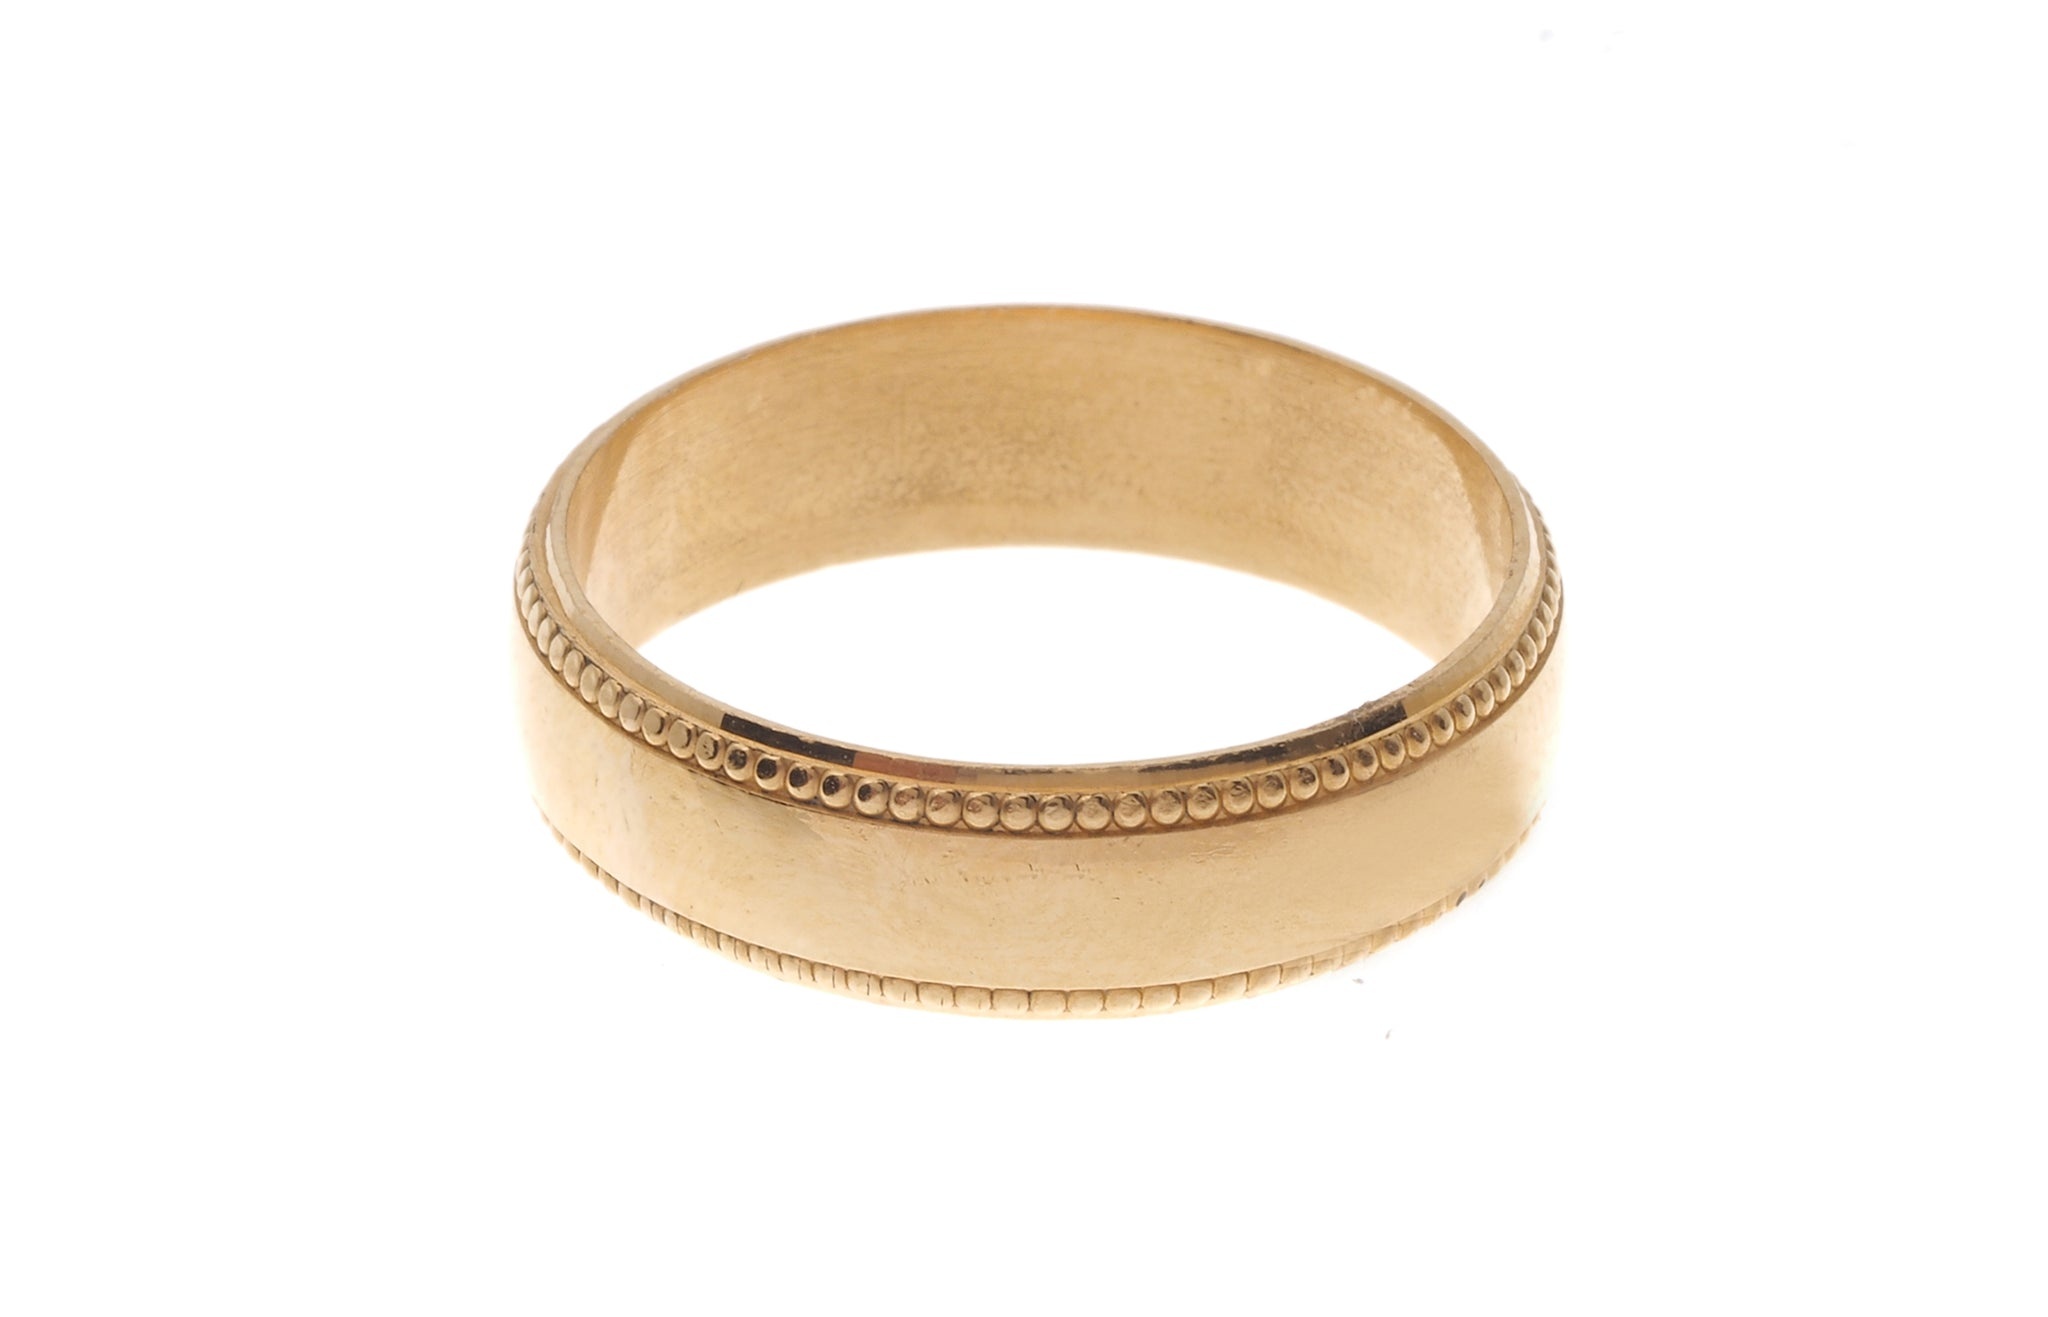 22ct Gold Gents Wedding Band (8g) GR-4765